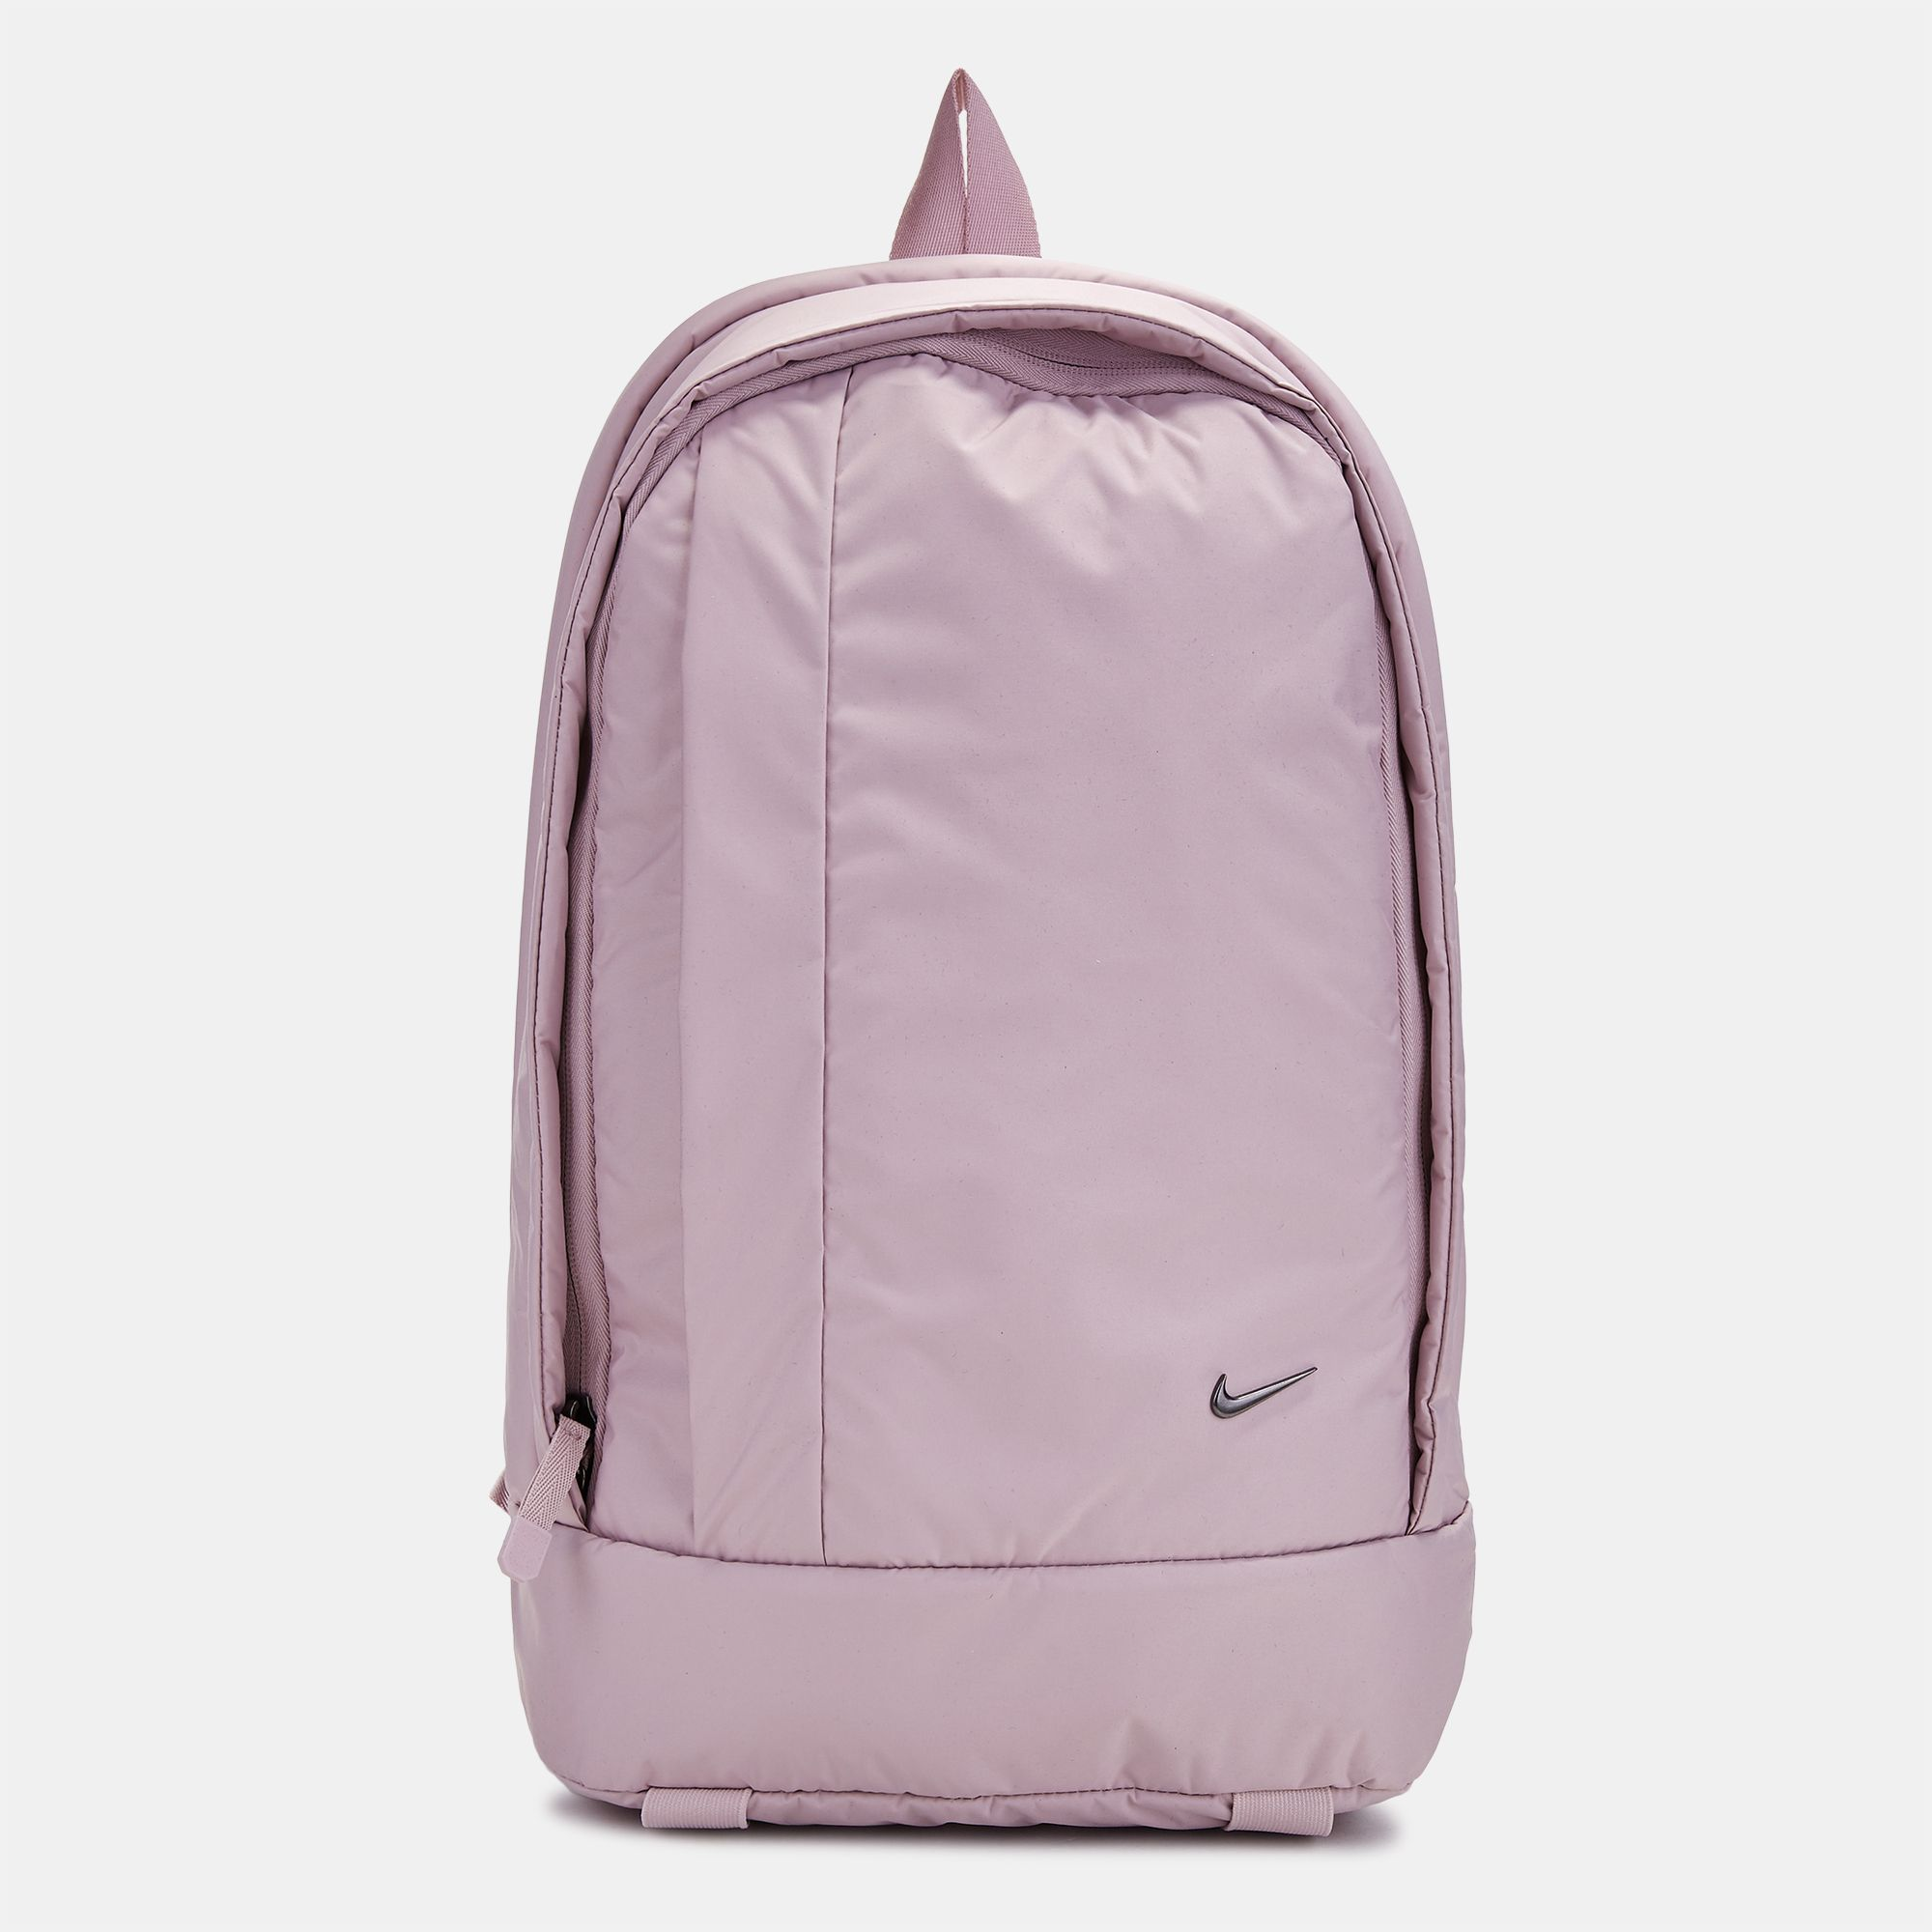 9e671a4a12ab4 pink nike backpack Sale,up to 33% Discounts